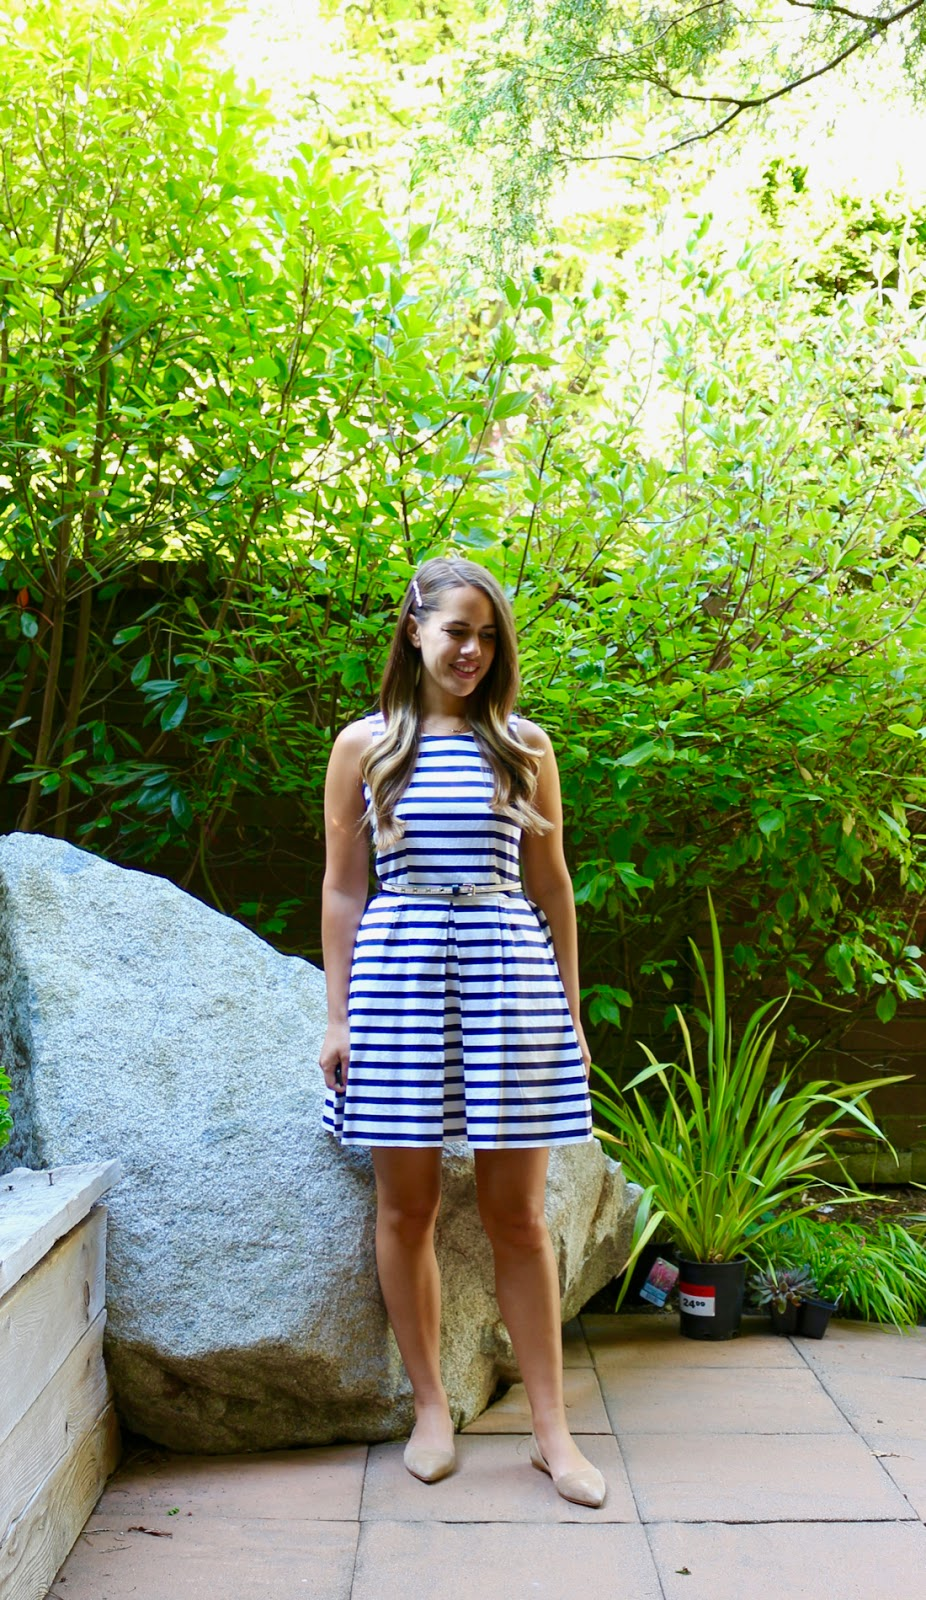 Jules in Flats - Gap Fit and Flare Striped Dress (Business Casual Spring Workwear on a Budget)